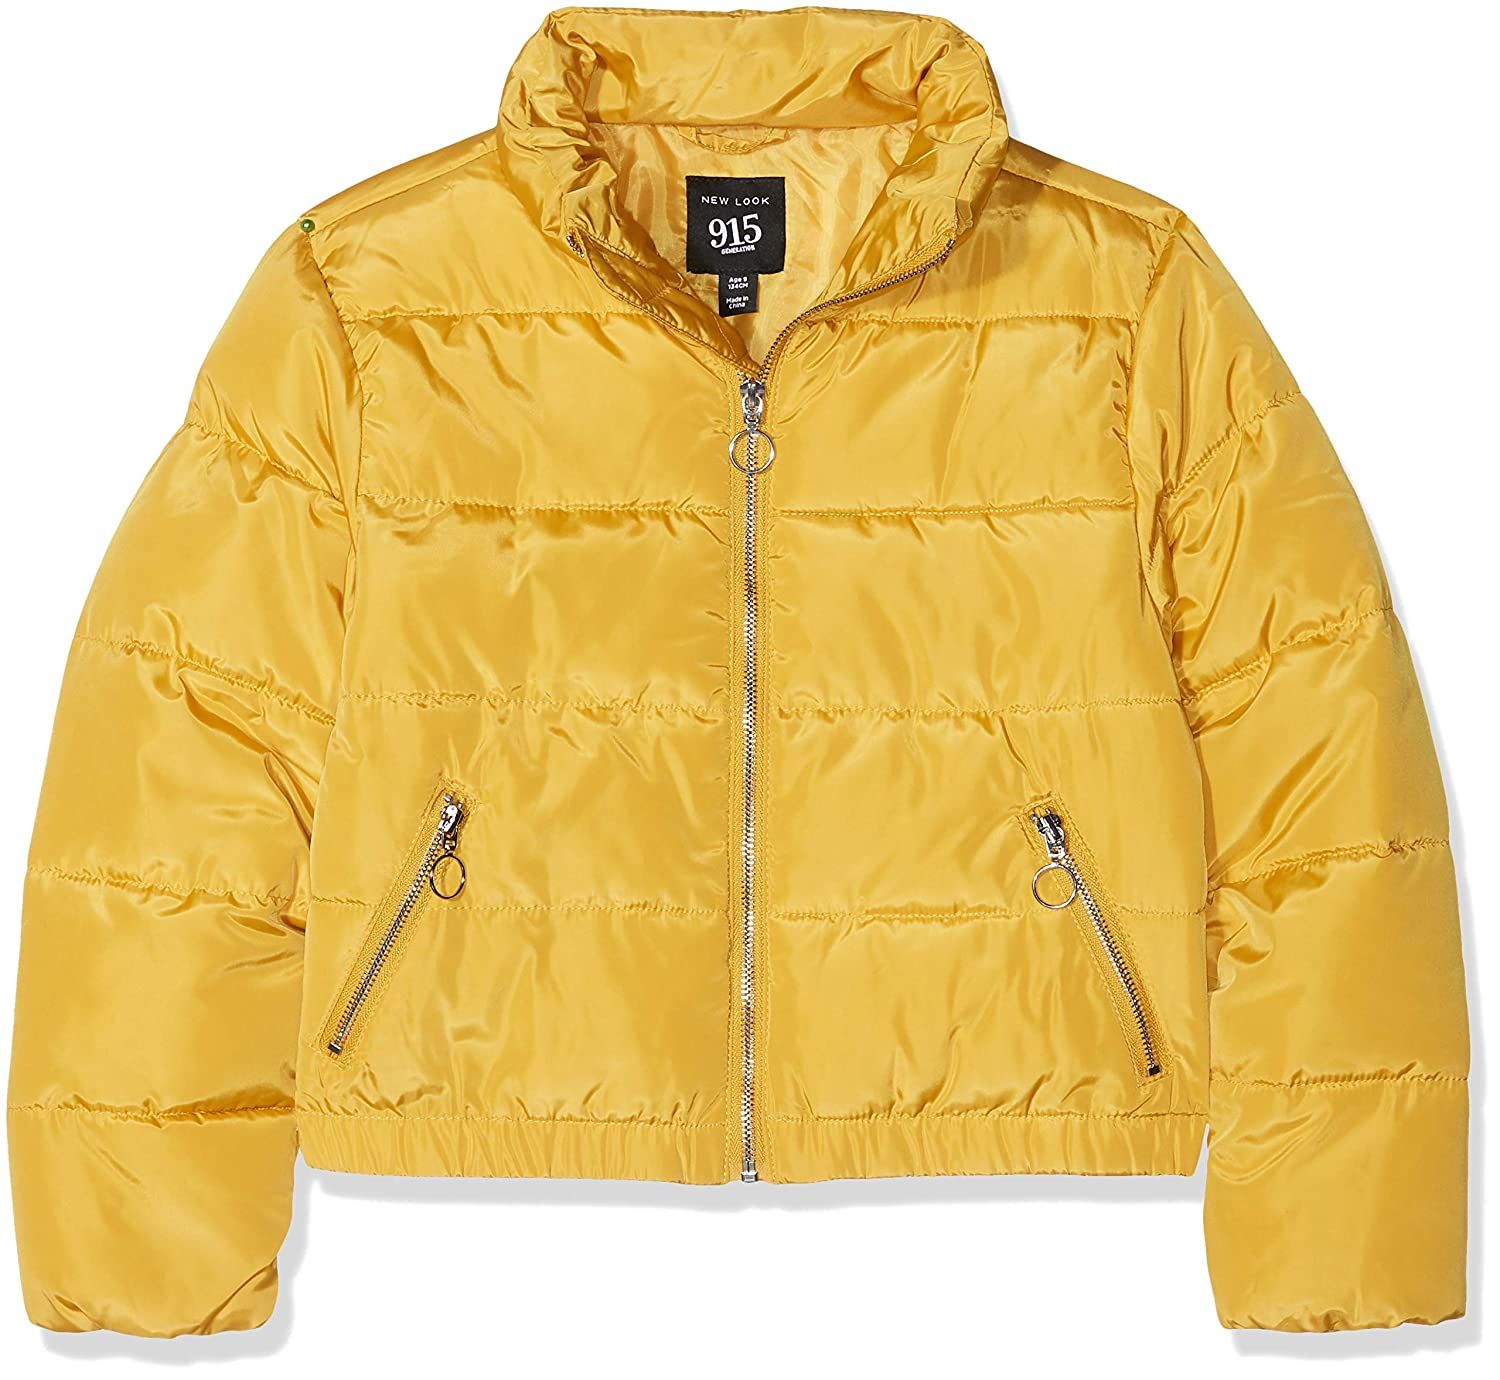 New Look Girl's Coat New Look Girl' s Coat New Look 915 5844565